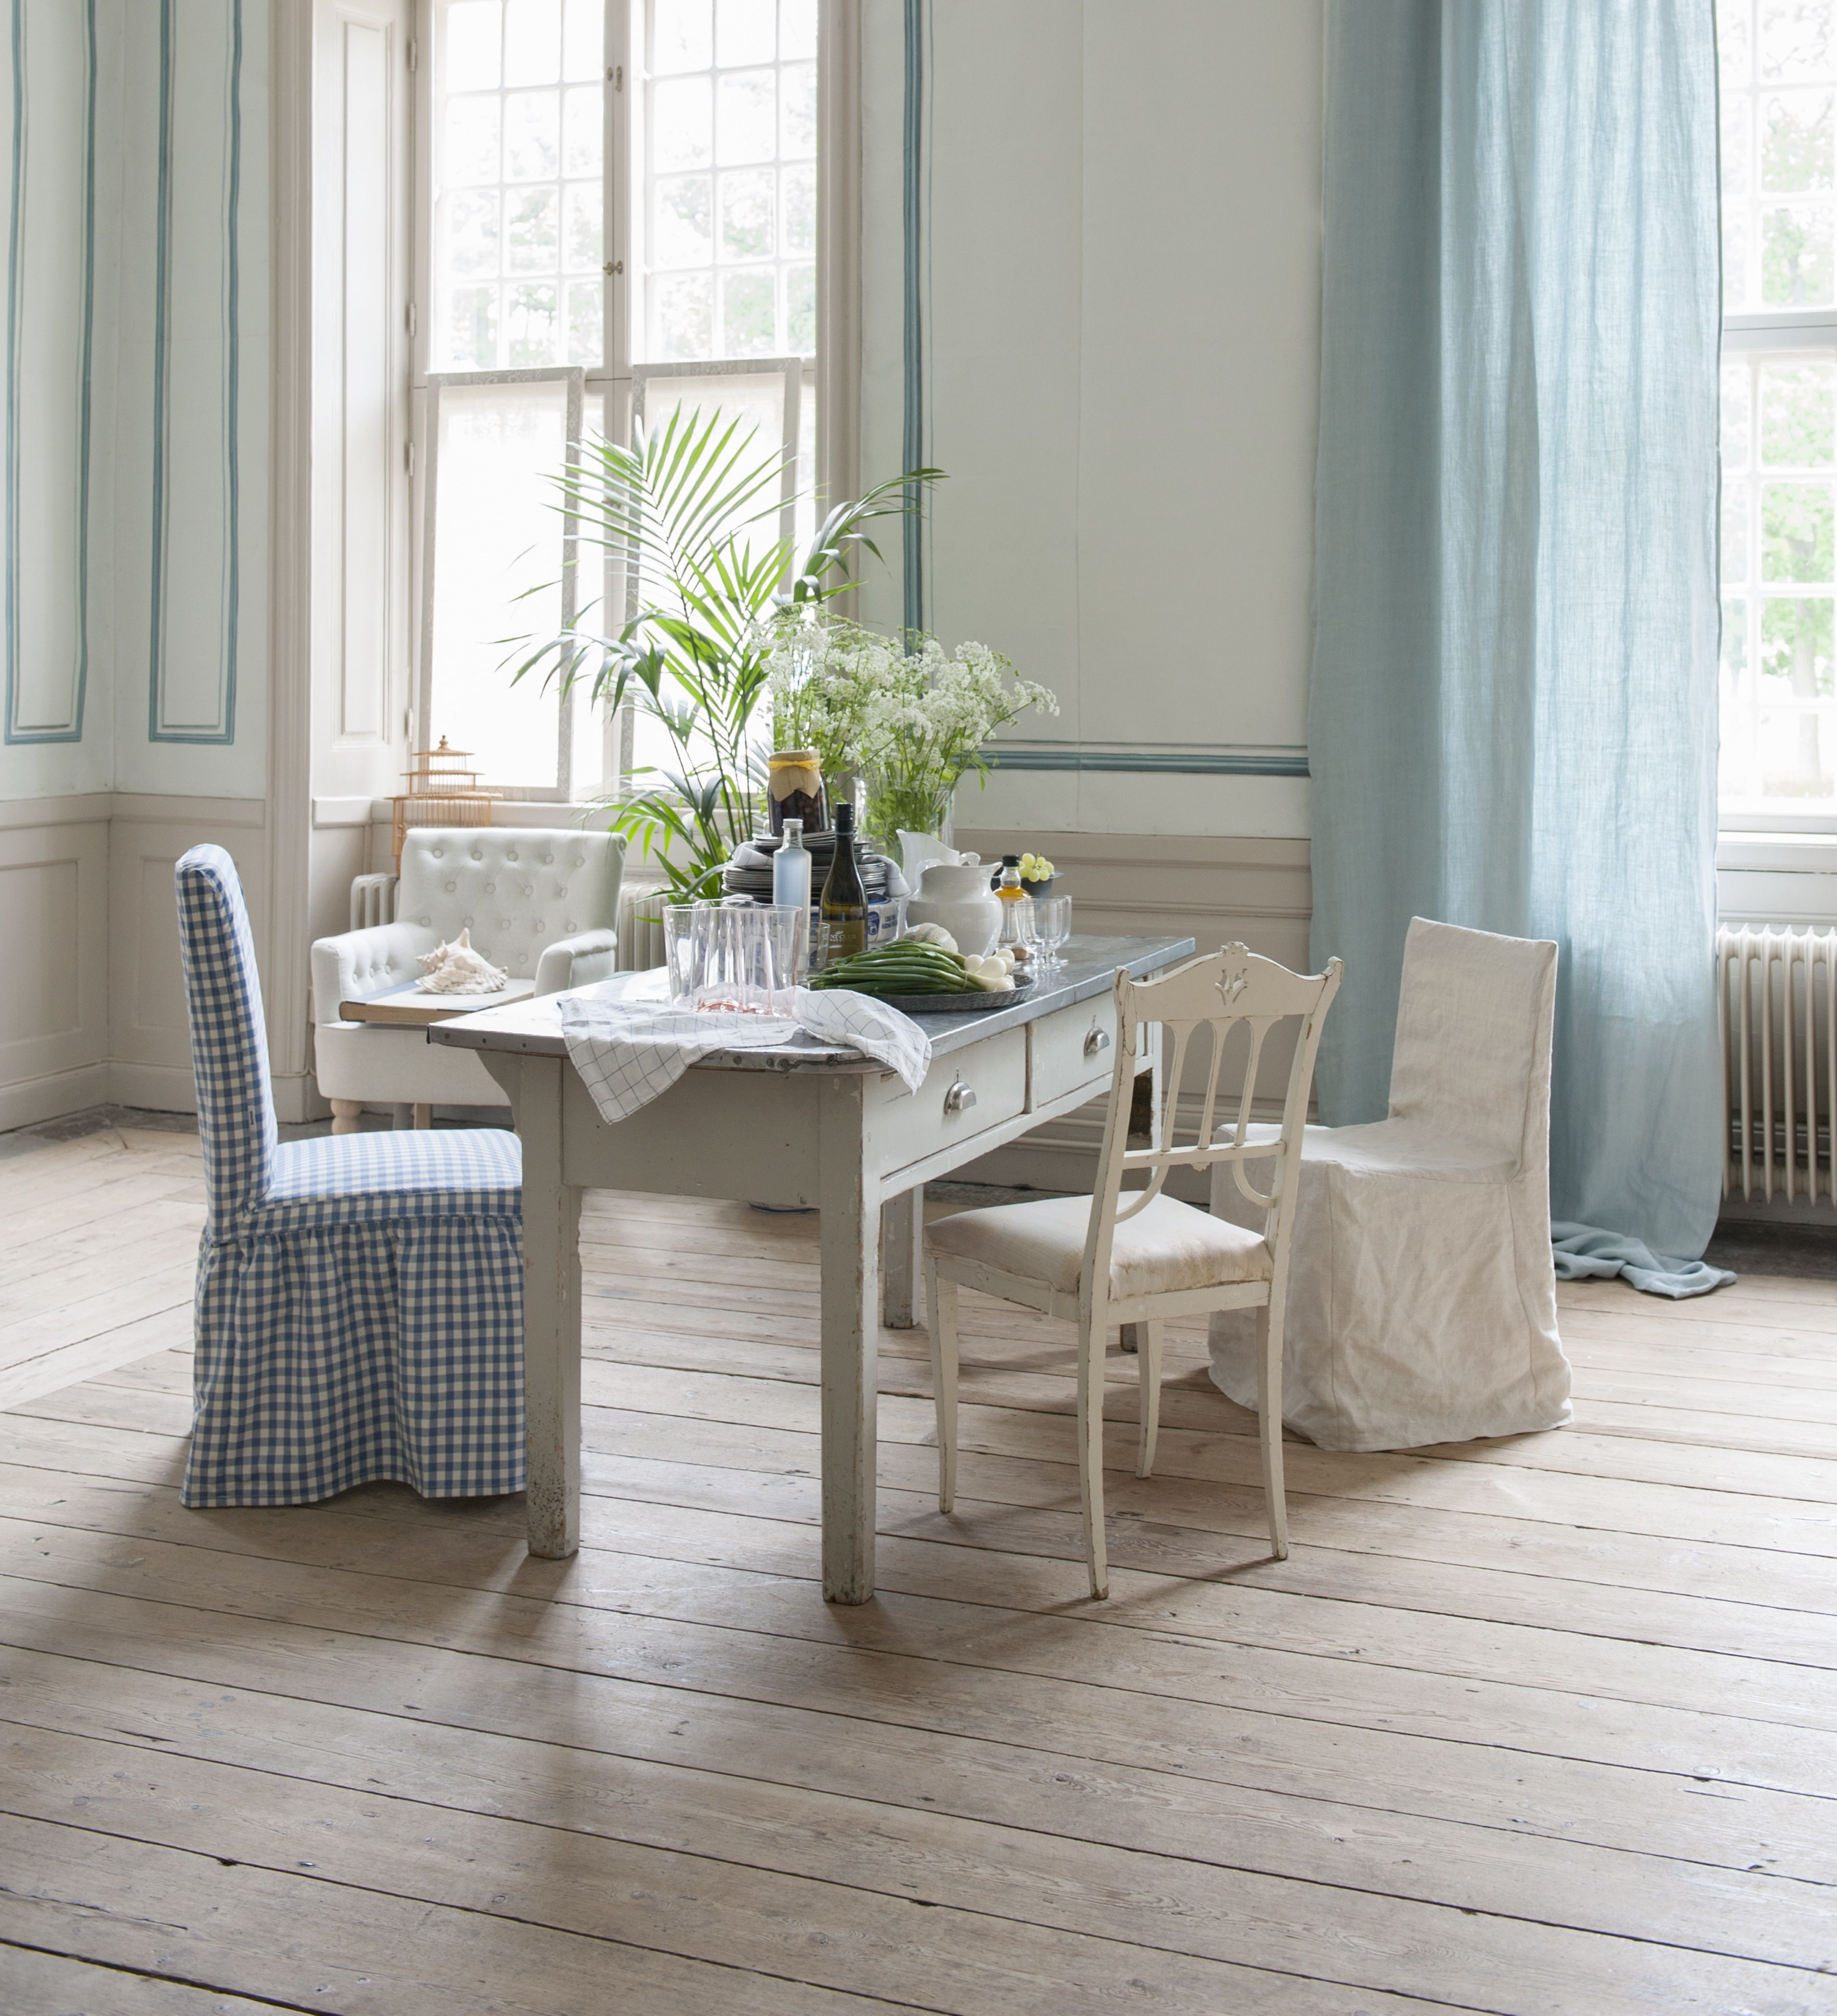 Curtains Coming To Bemzcurtain With Rod Pocket In Brera Lino Brilliant Large Dining Room Chair Covers 2018